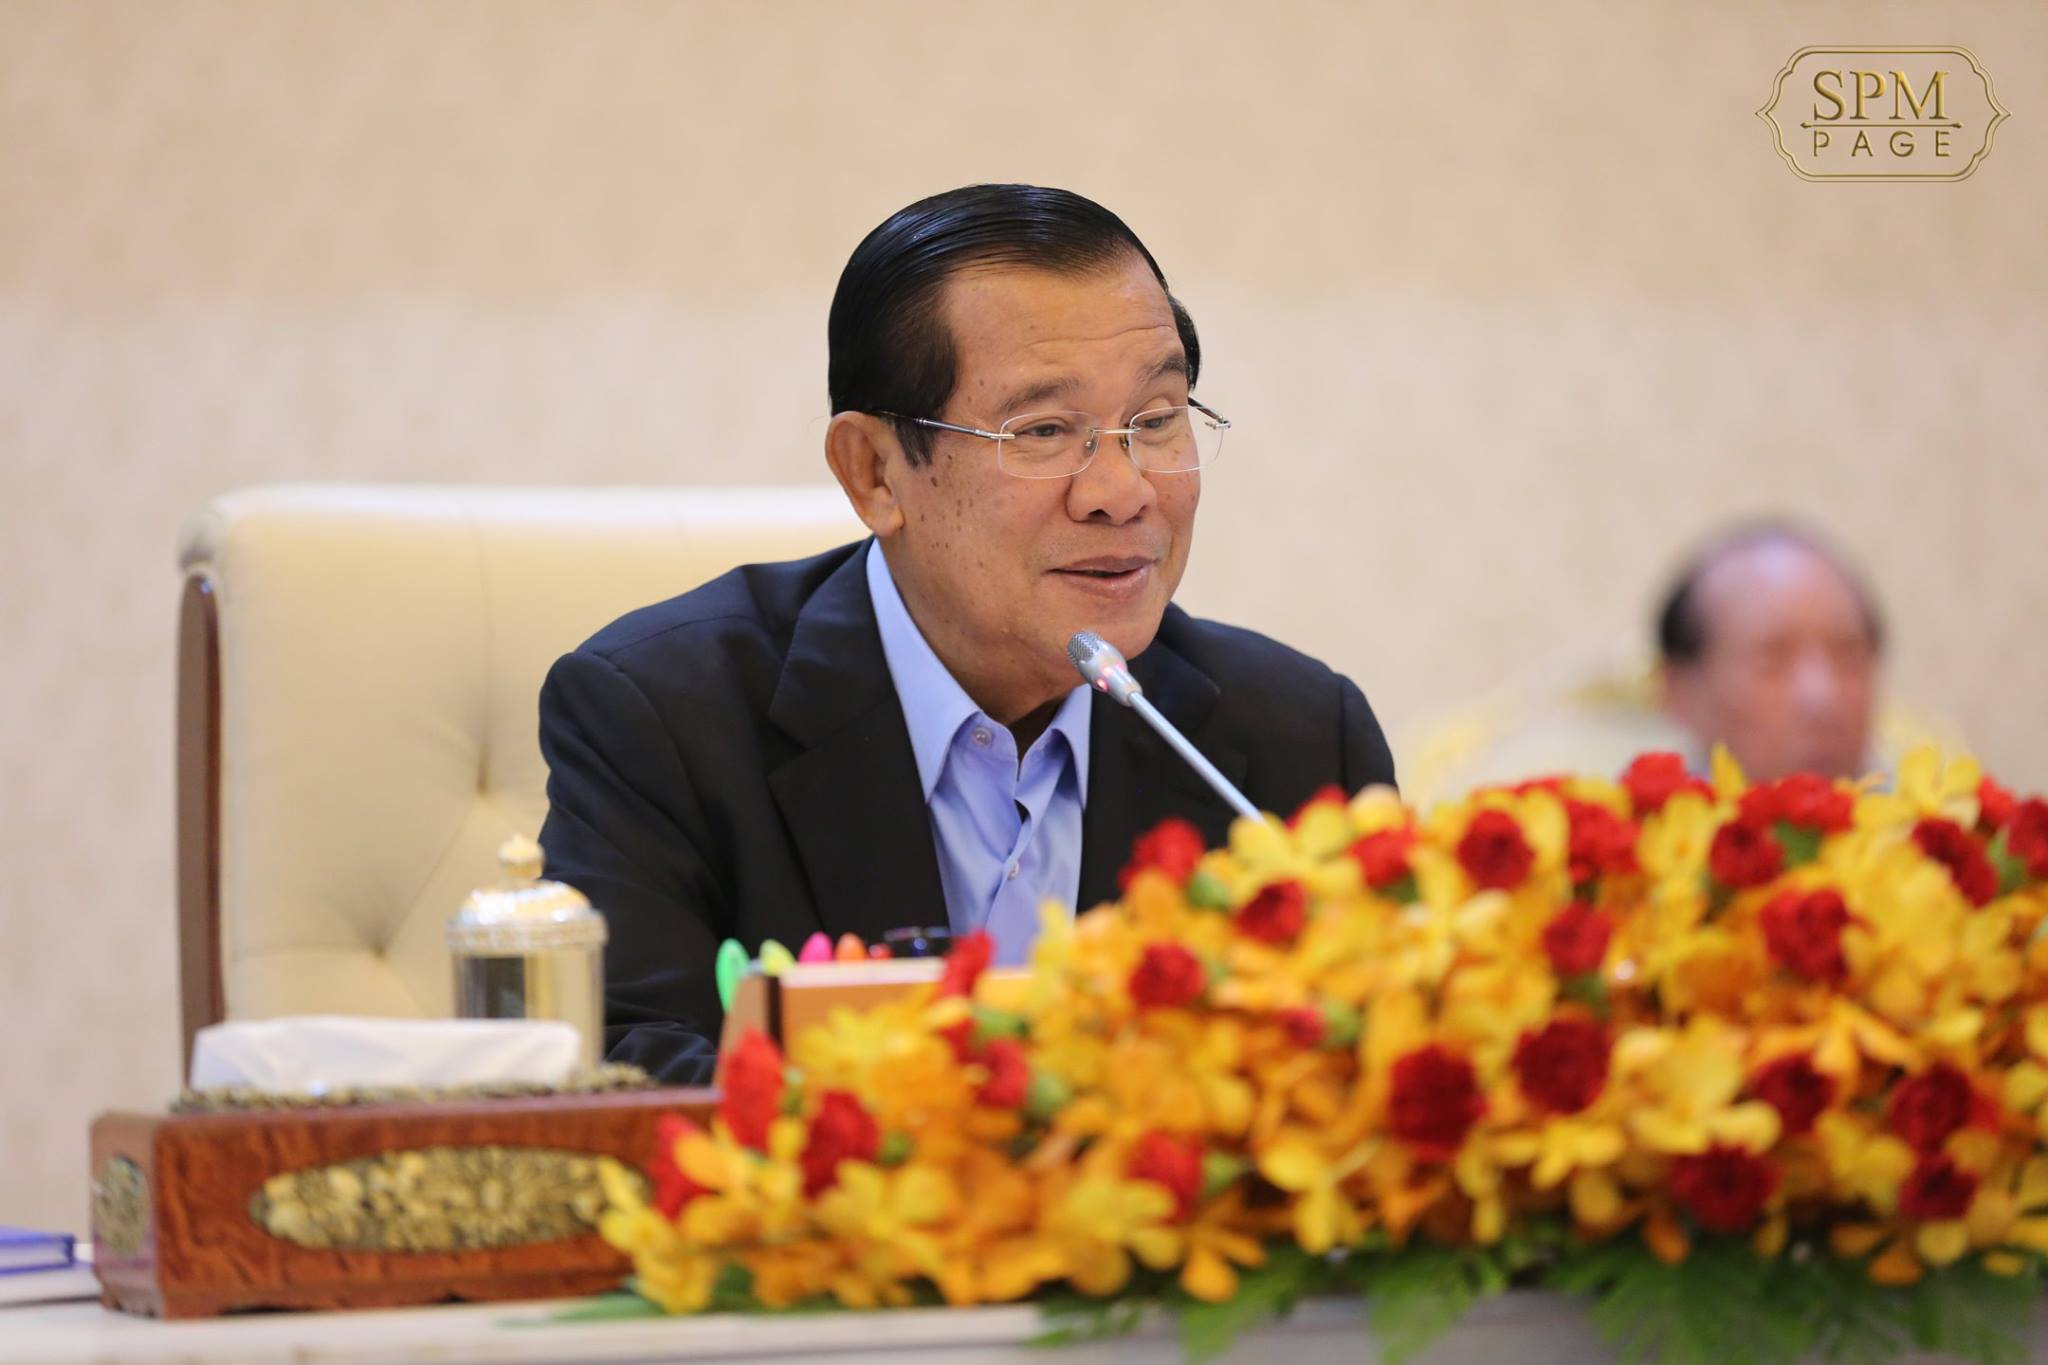 PM Hun Sen: The Government Can Ensure Employment 99.7% of The Total 10 Million Workforces